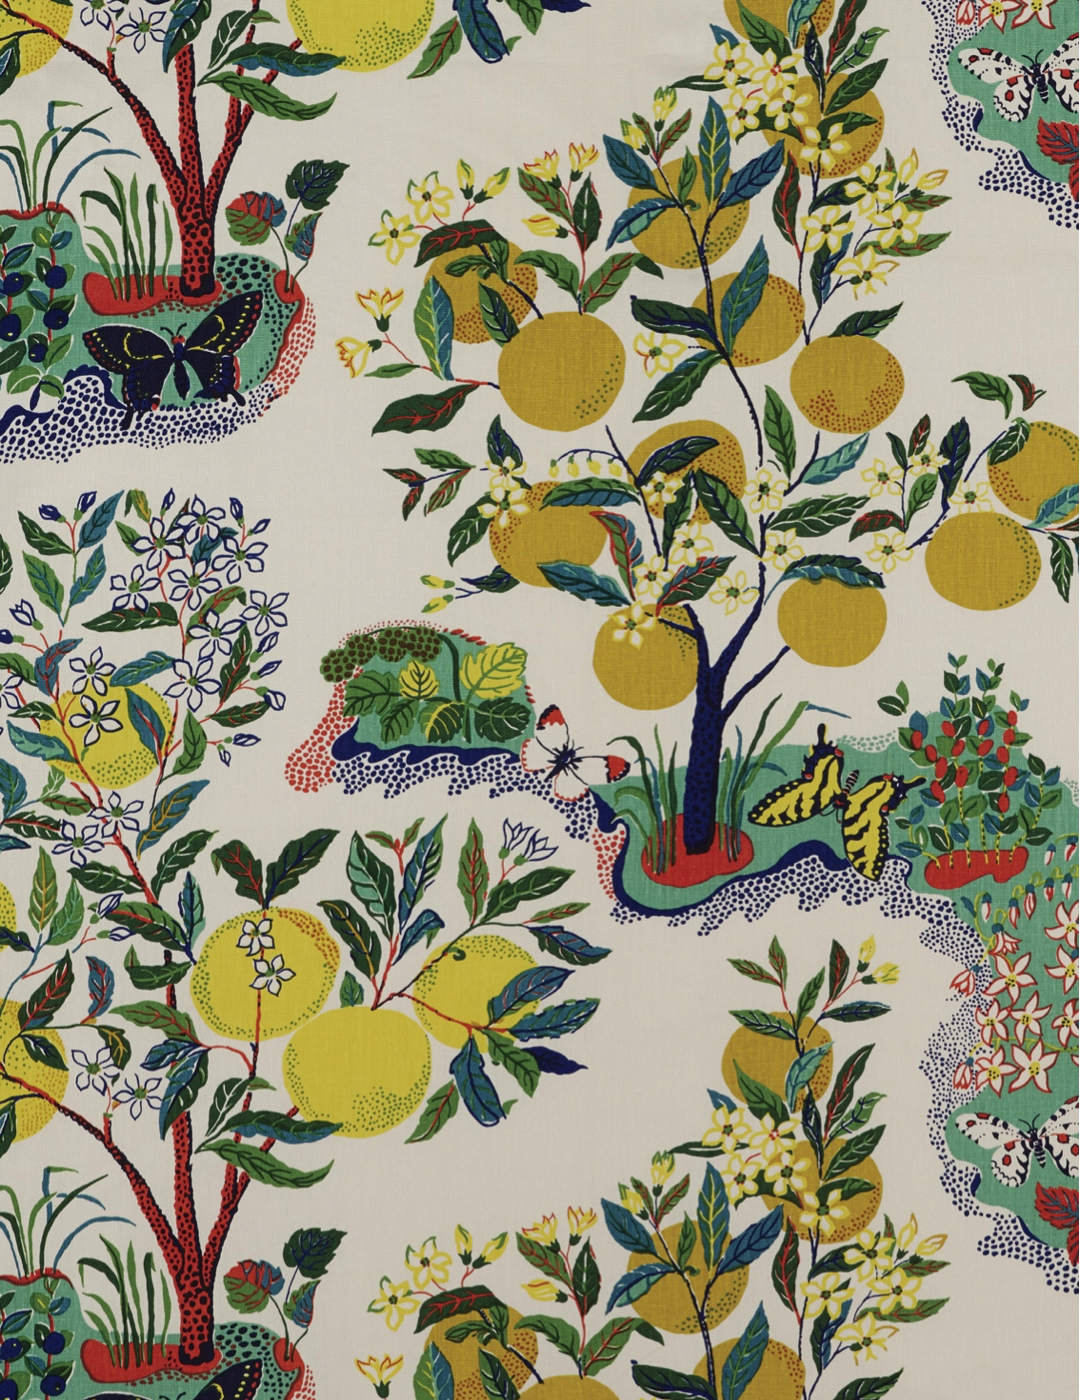 1947 JOSEF FRANK The acclaimed Viennese midcentury